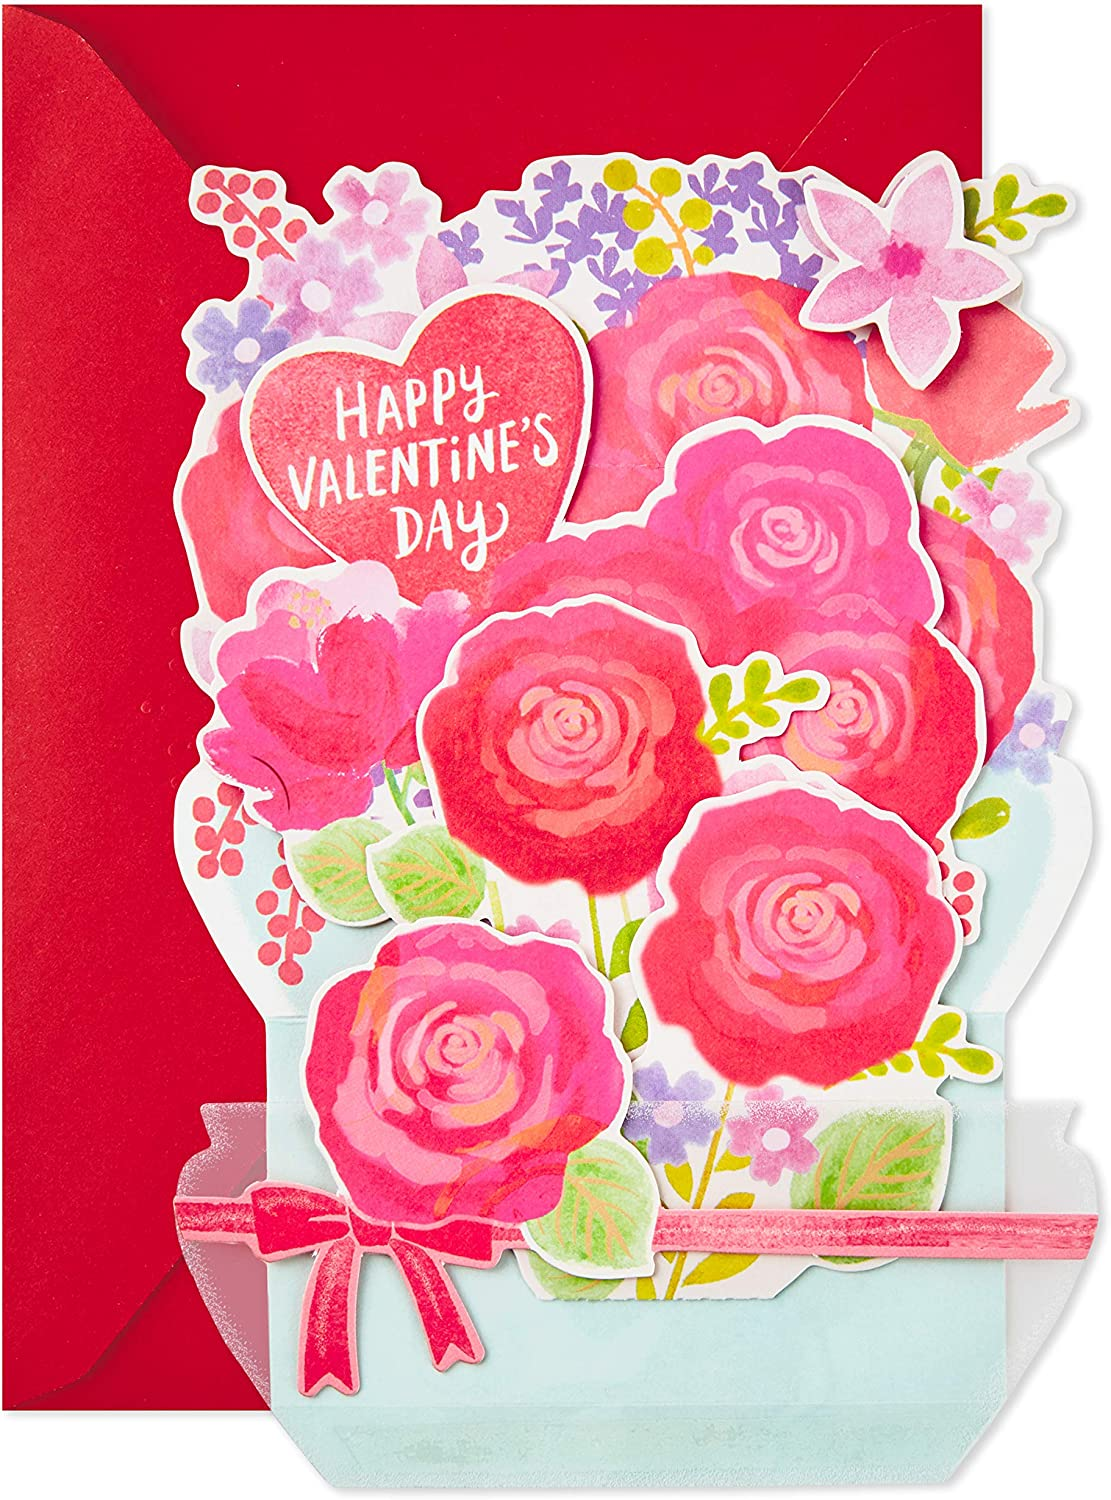 Hallmark Paper Wonder Displayable Pop Up Valentines Day Card for Significant Other Fish Bowl Valentine